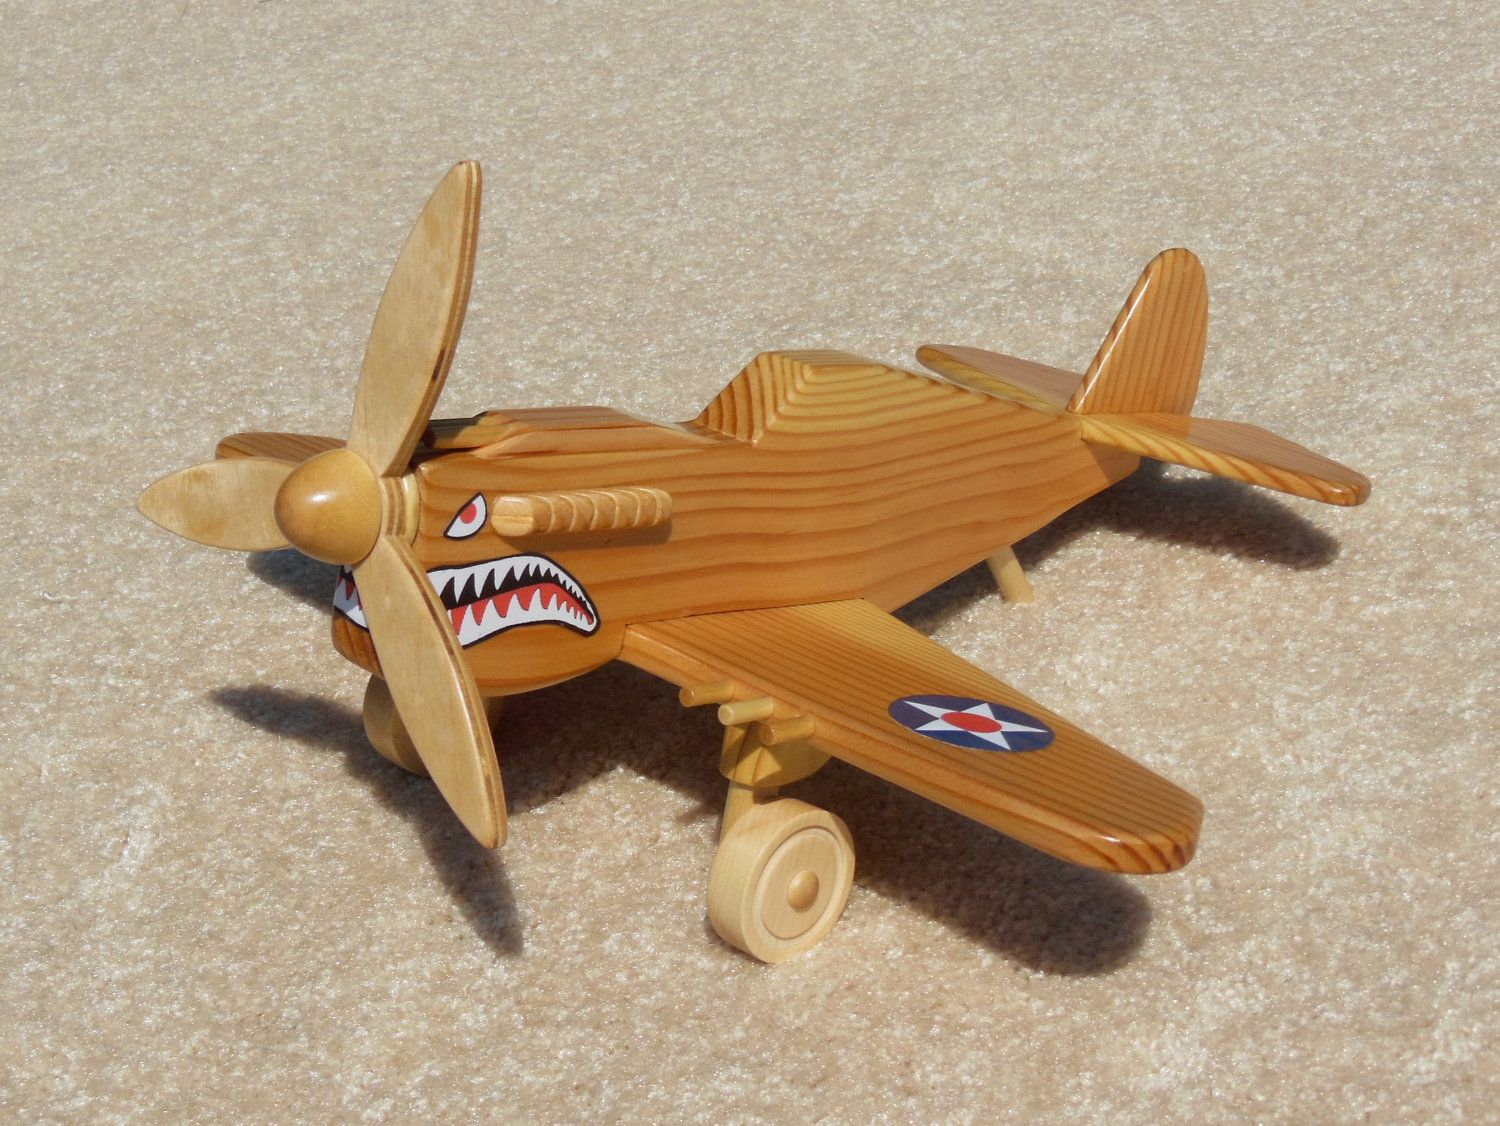 Wooden P-40 Fighter \'Flying Tiger\' Toy Plane   Handmade Wooden Toys ...